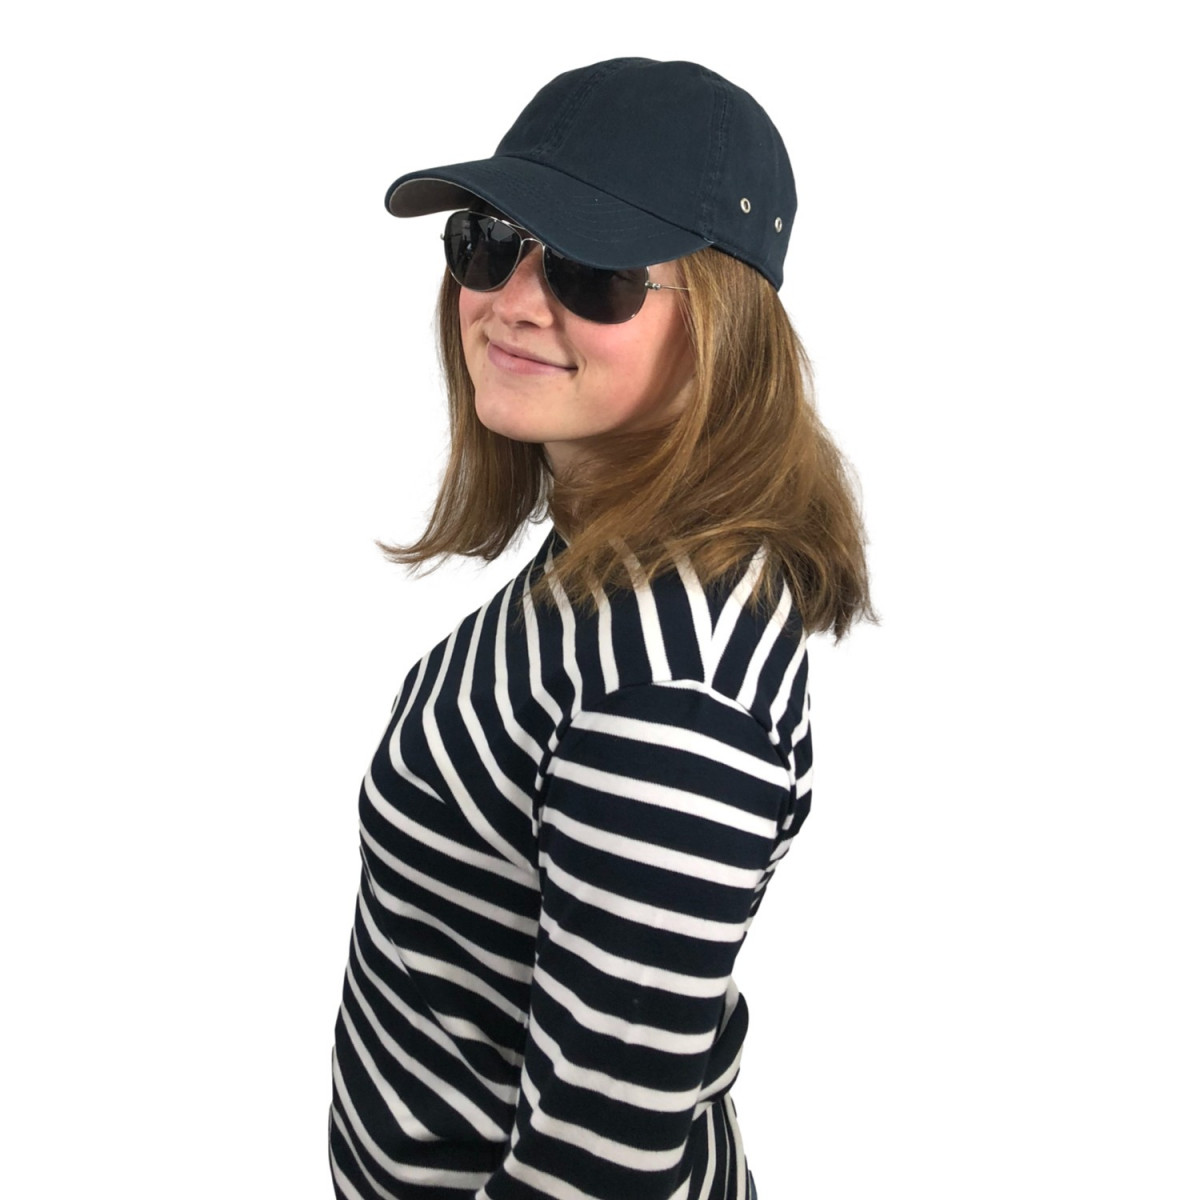 https://www.boutique-augustin.com/1804-thickbox/casquette-ete.jpg